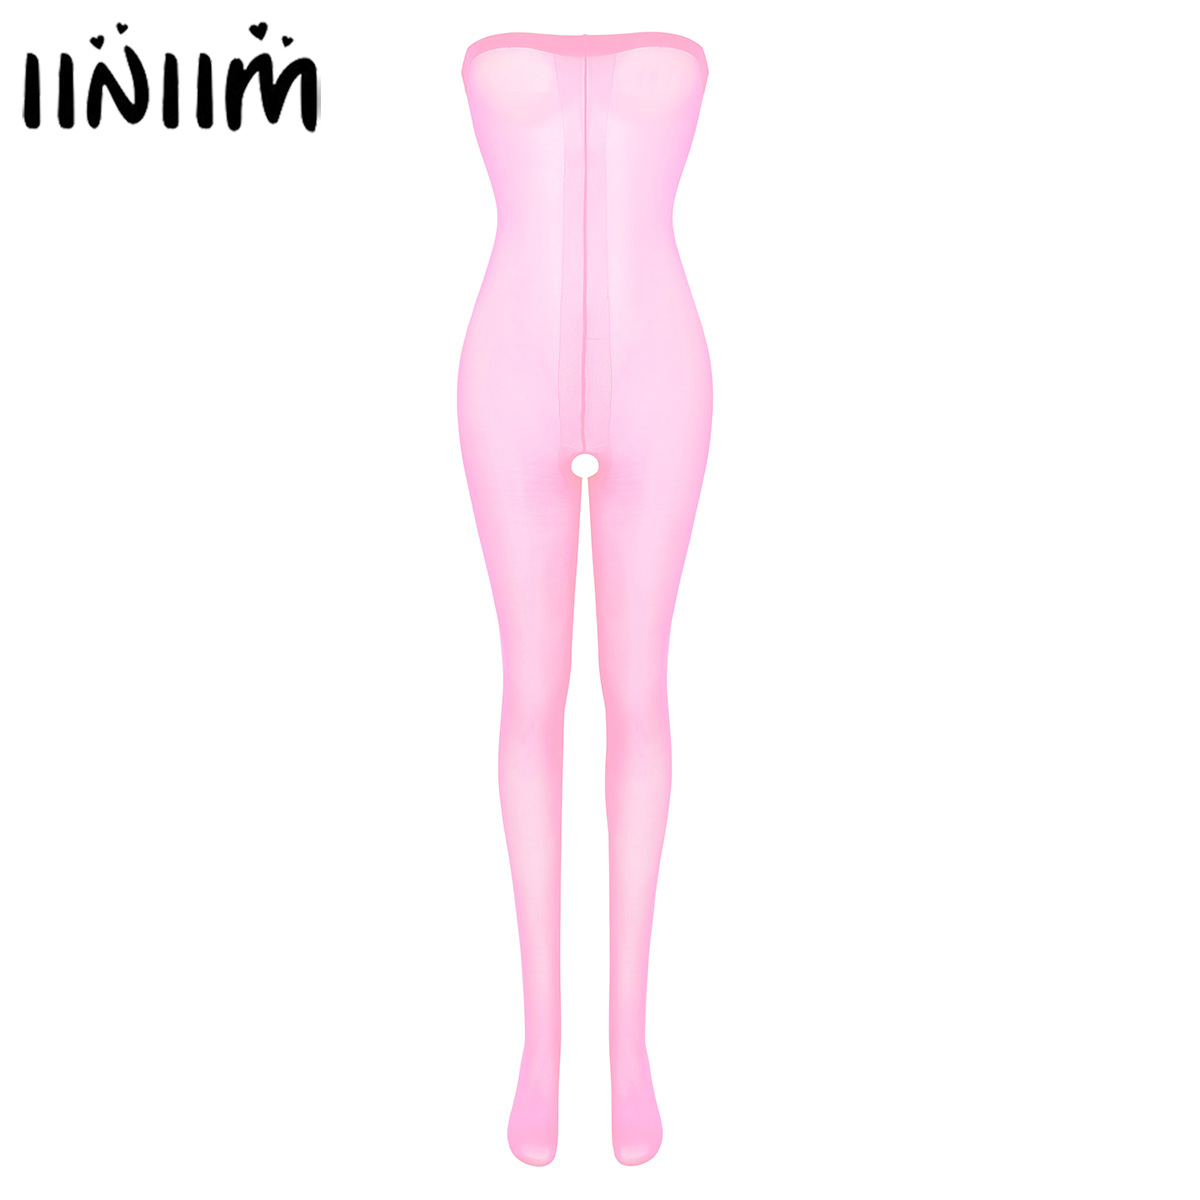 Womens Ultra Shimmery Stretch Toe to Bust Crotchless 30 Denier Body Stocking Pantyhose Lingerie Tights Underwear Femme